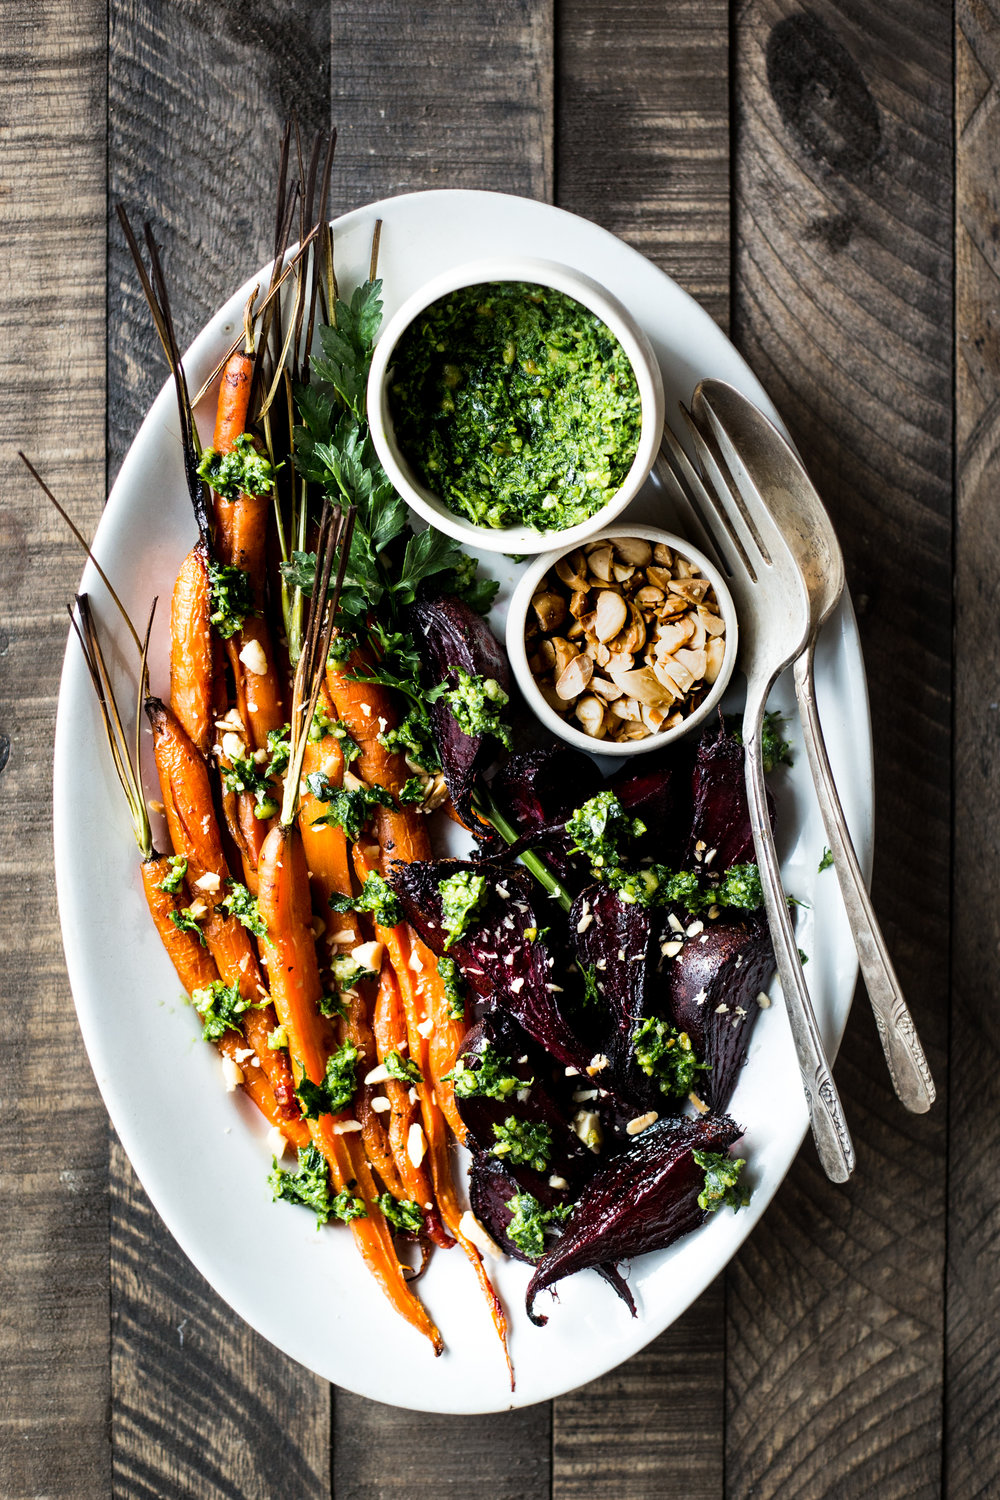 Honey Roasted Carrots & Beets with Carrot-Top & Marcona Almond Pesto